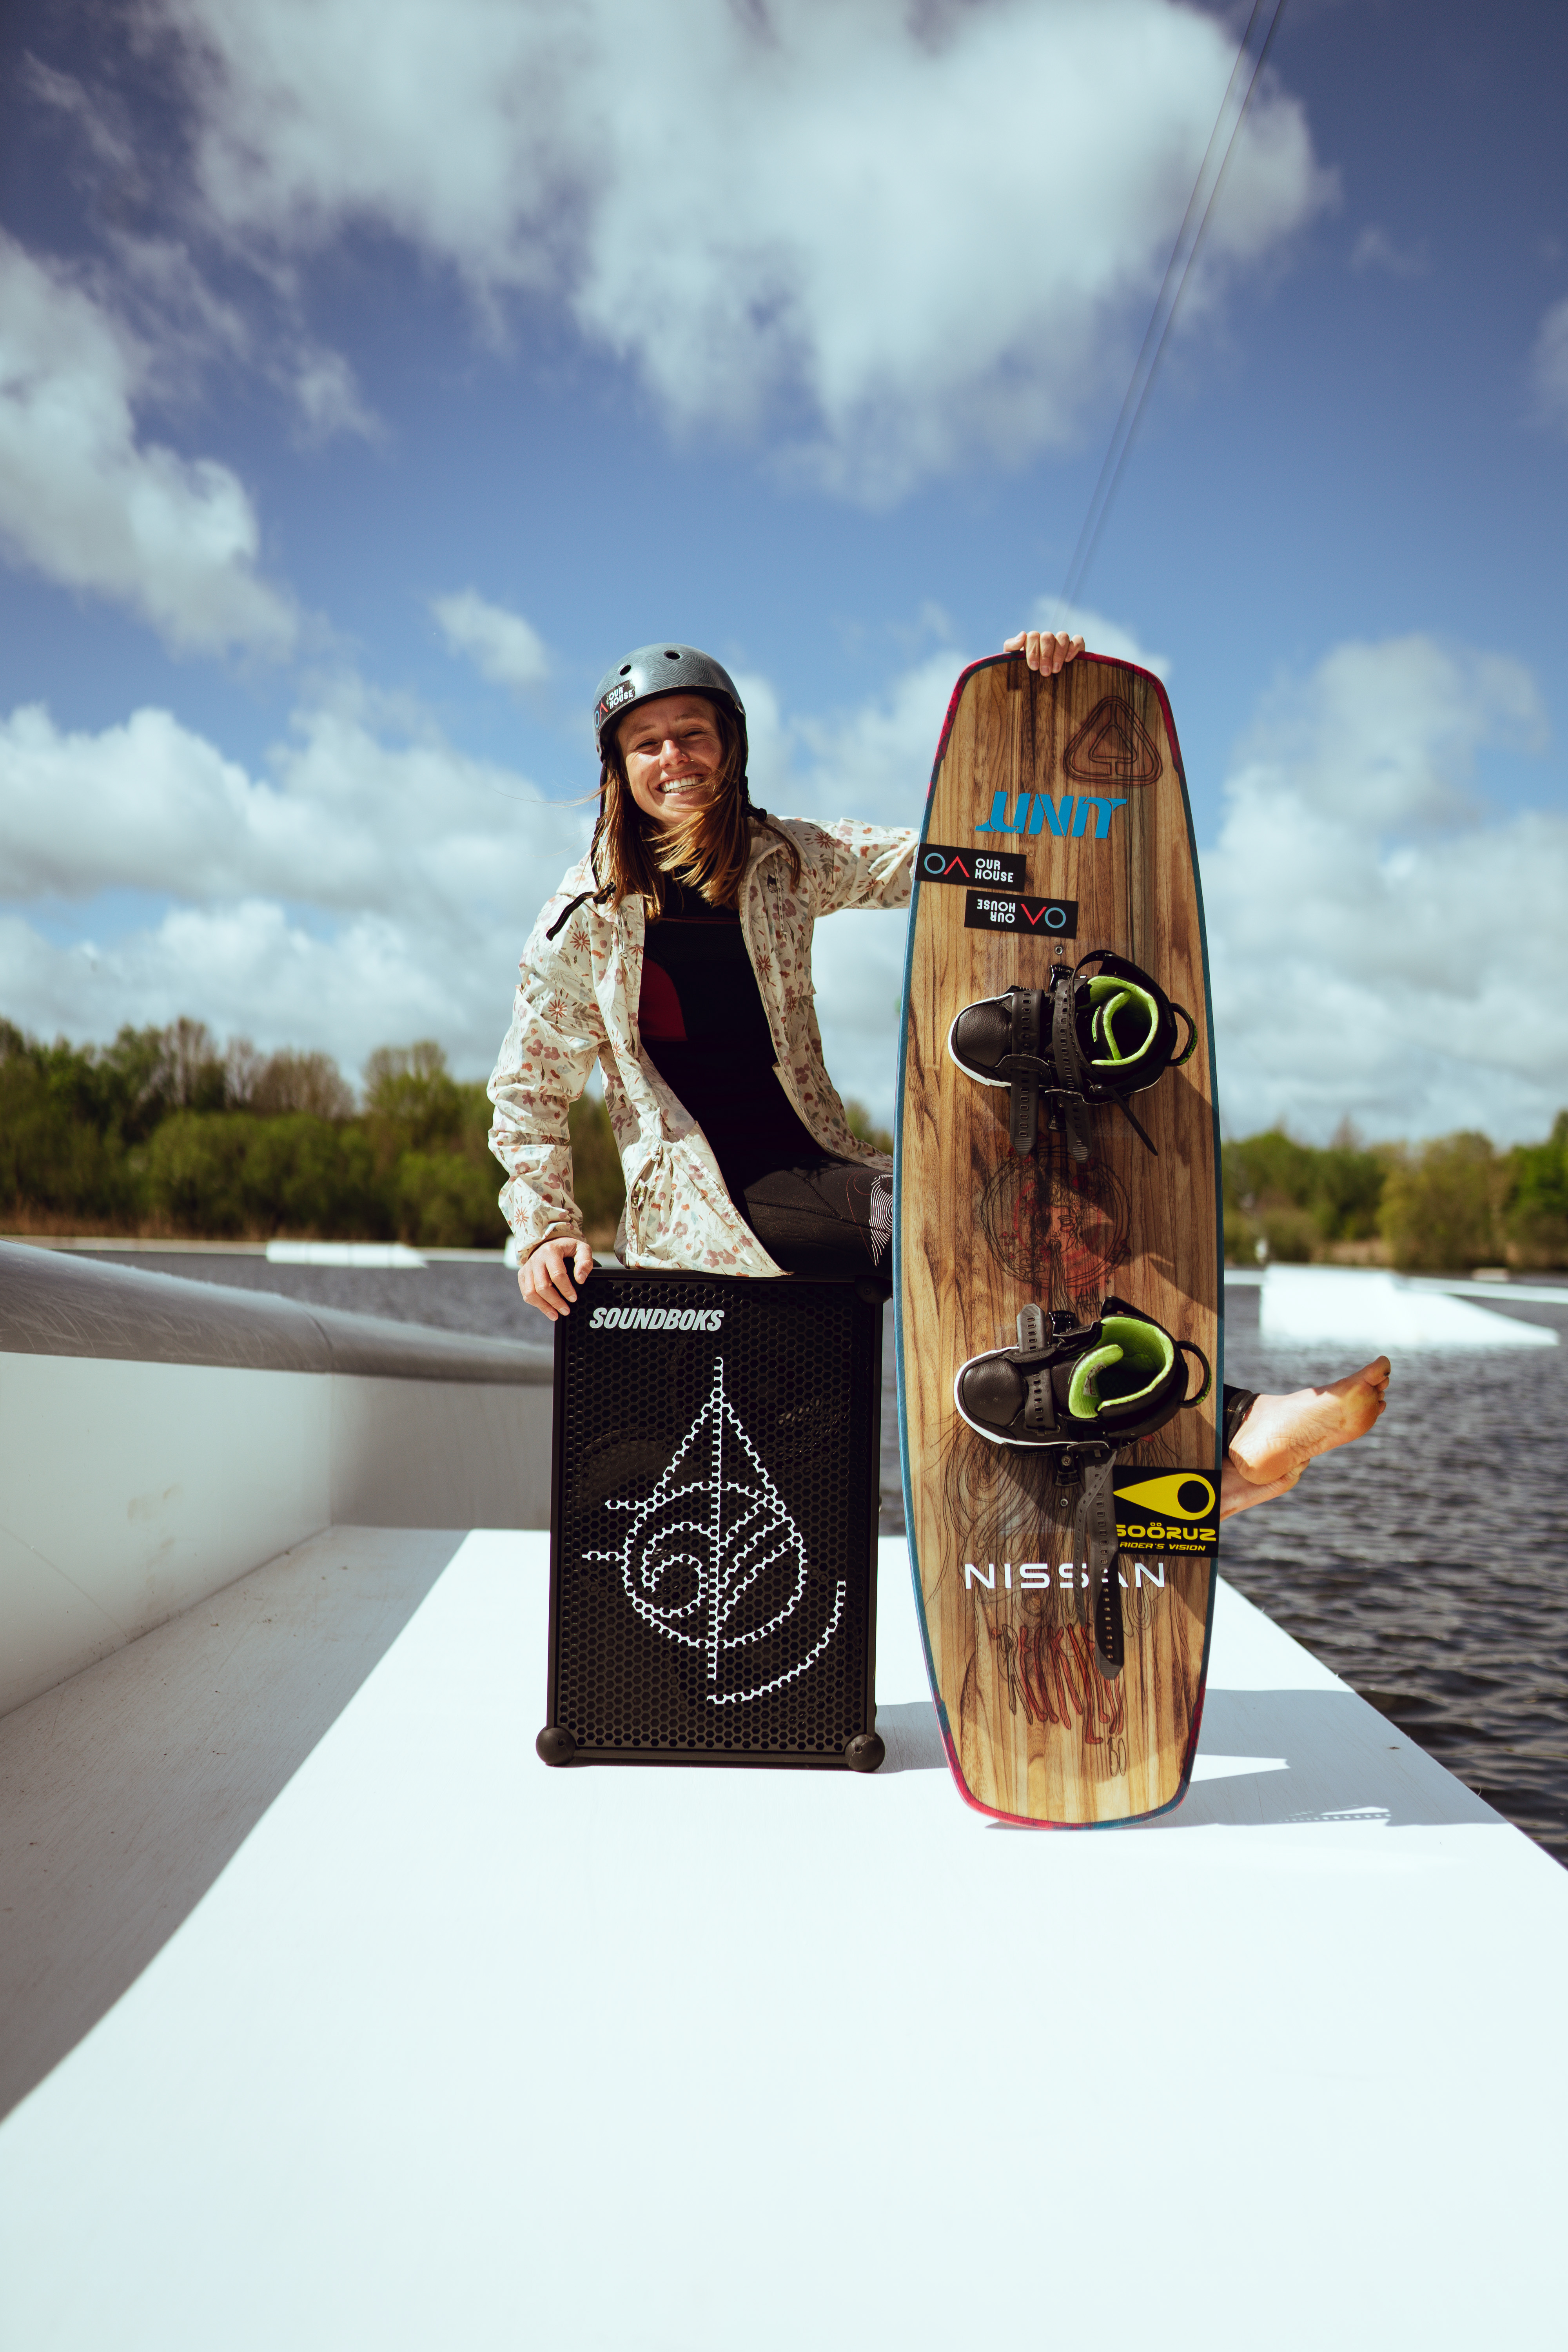 Anna with her SOUNDBOKS and her wakeboard.